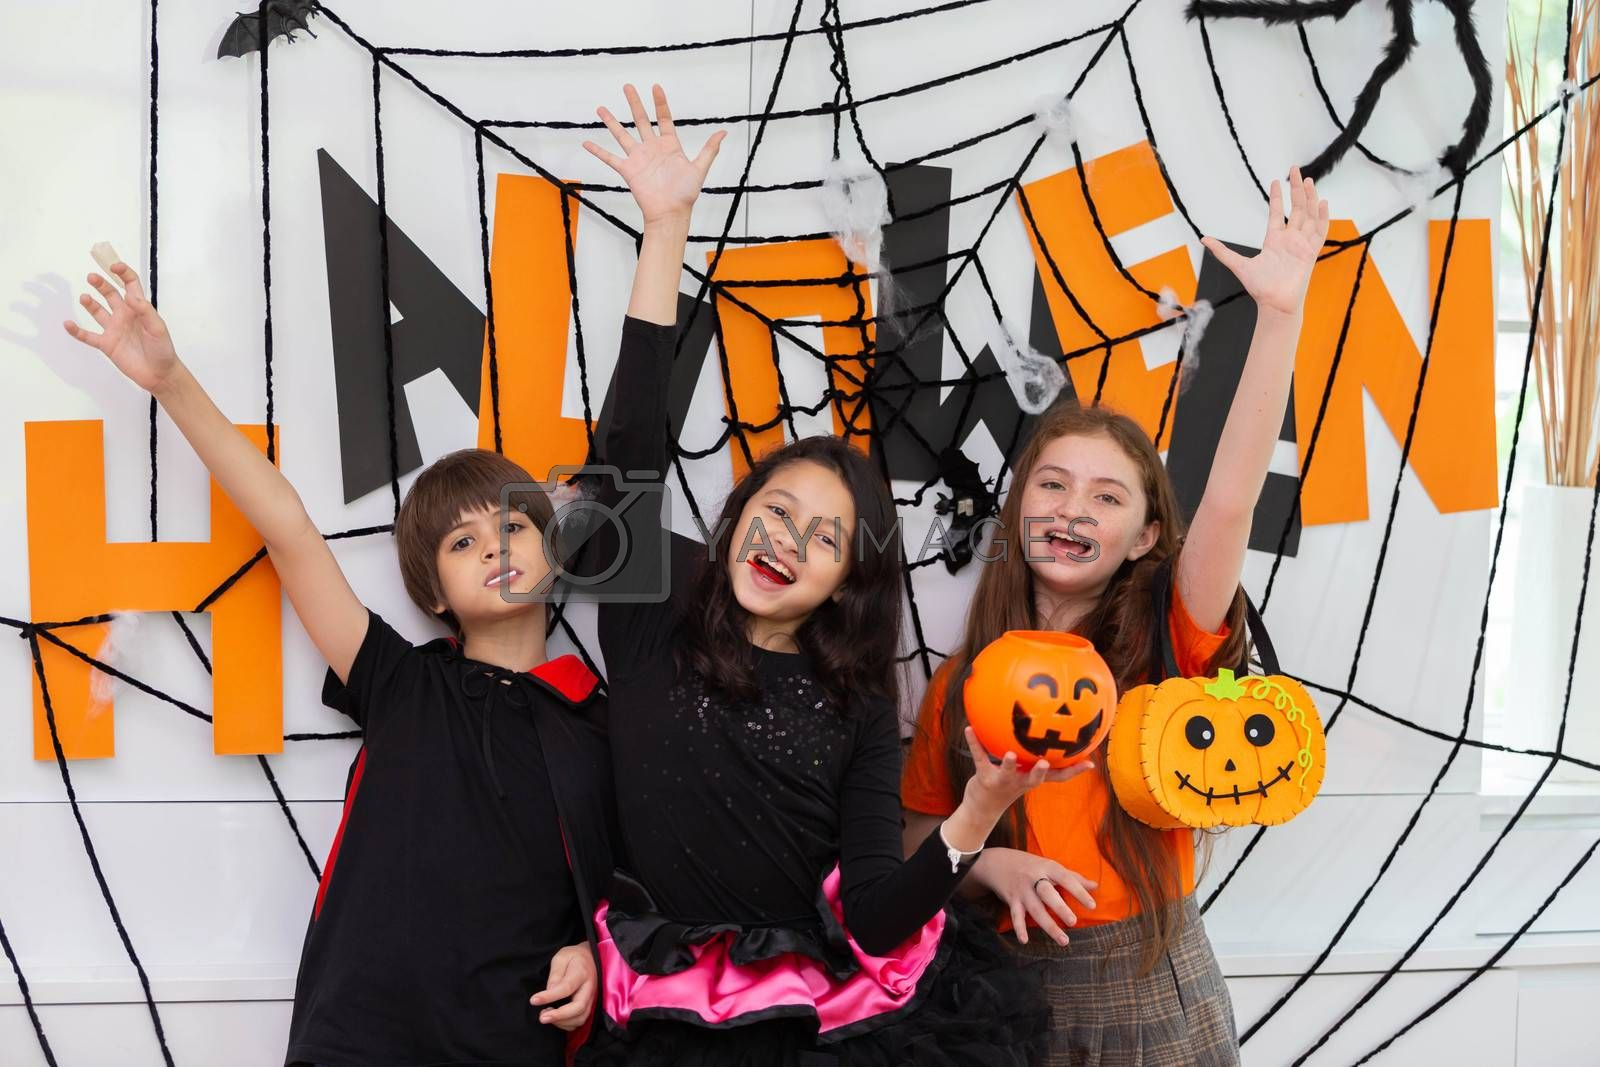 Happy Halloween by a group of children, brother and sister in carnival costume in decorated house